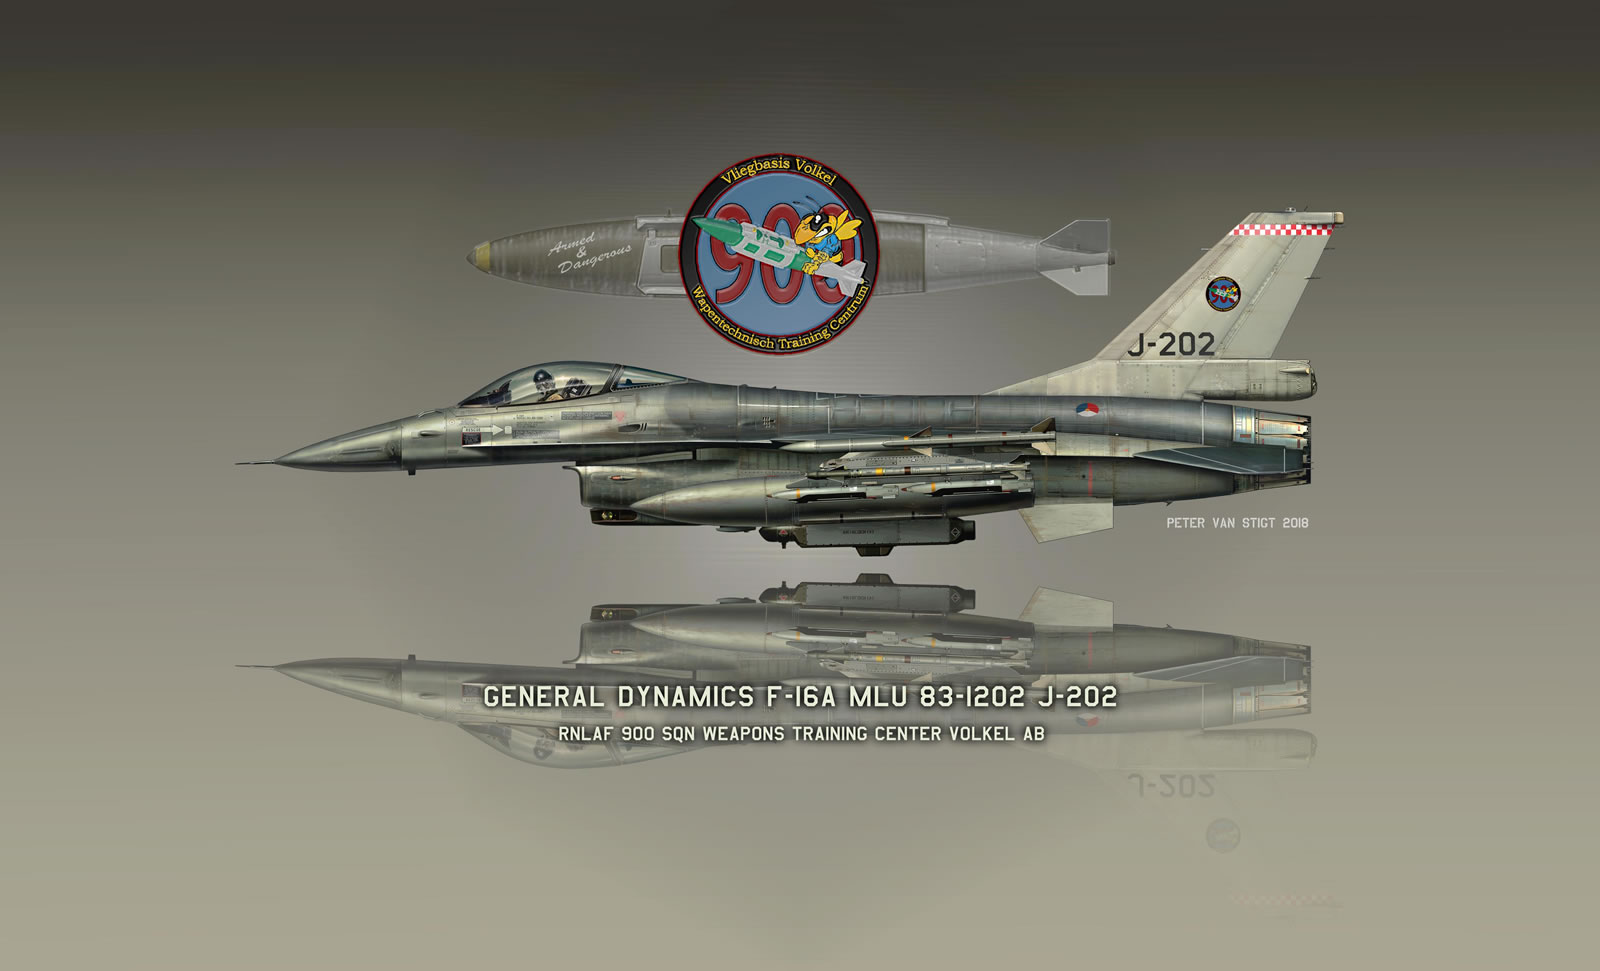 RNLAF Weapons Training Center J-202 F-16 Profile